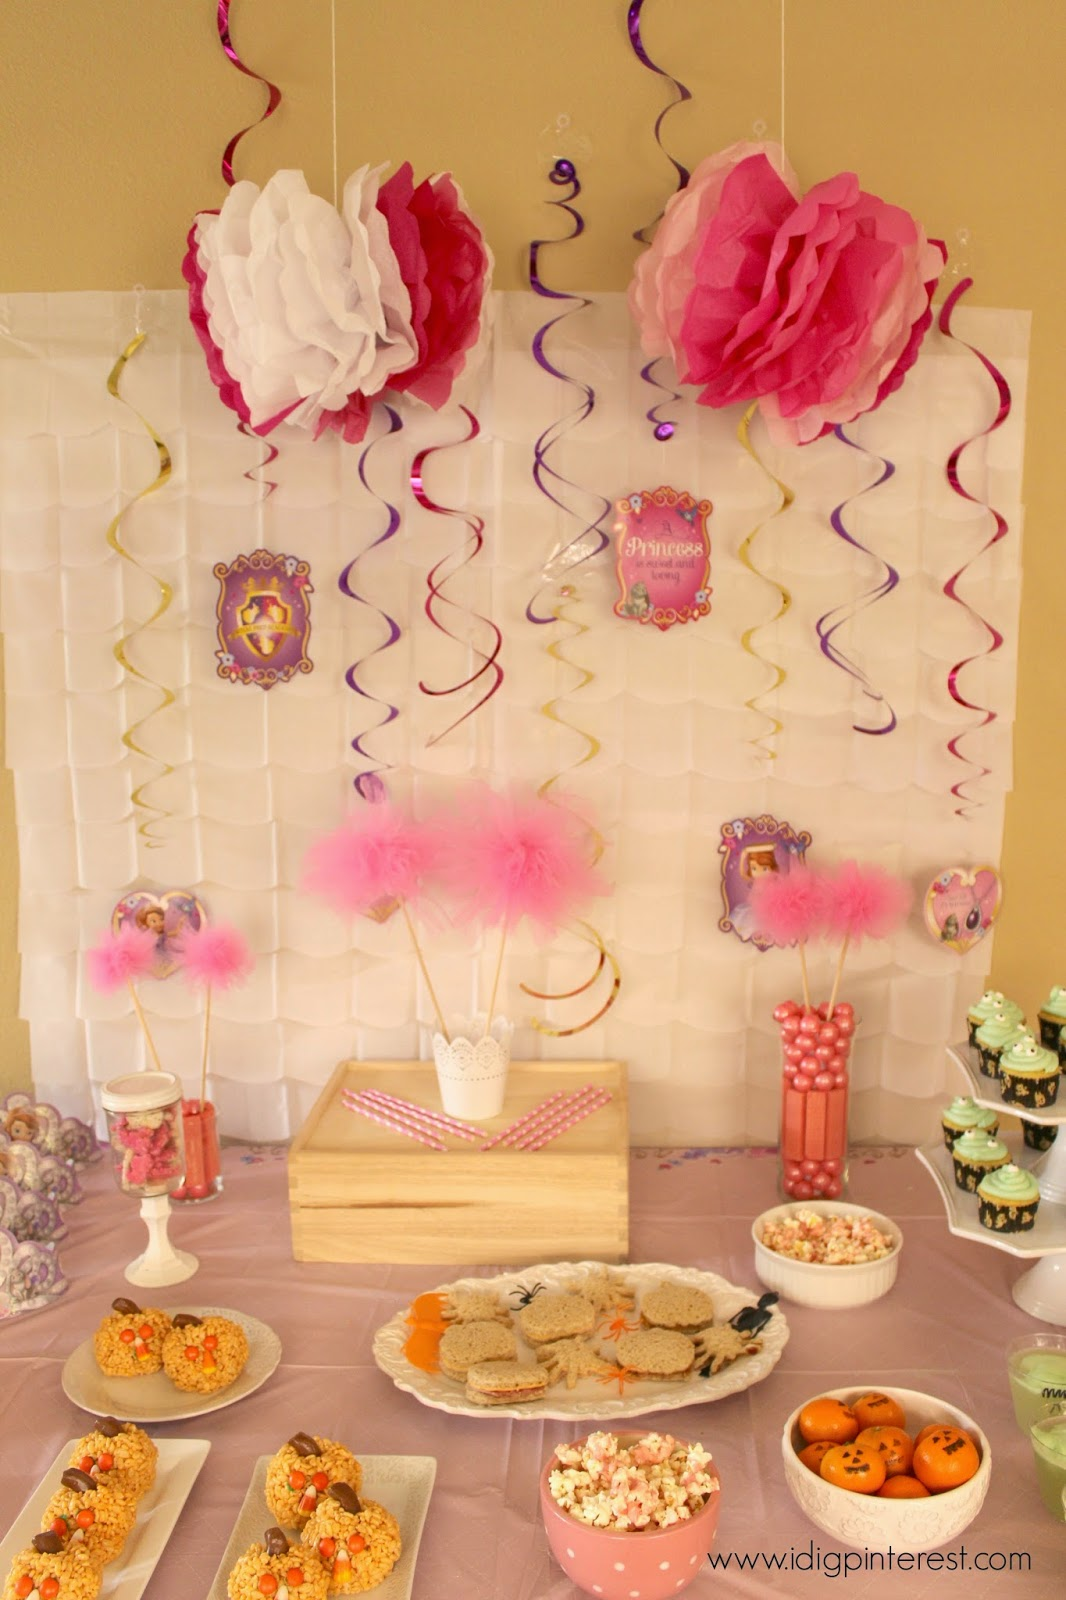 I Dig Pinterest Disney Jr Sofia The First Halloween Party